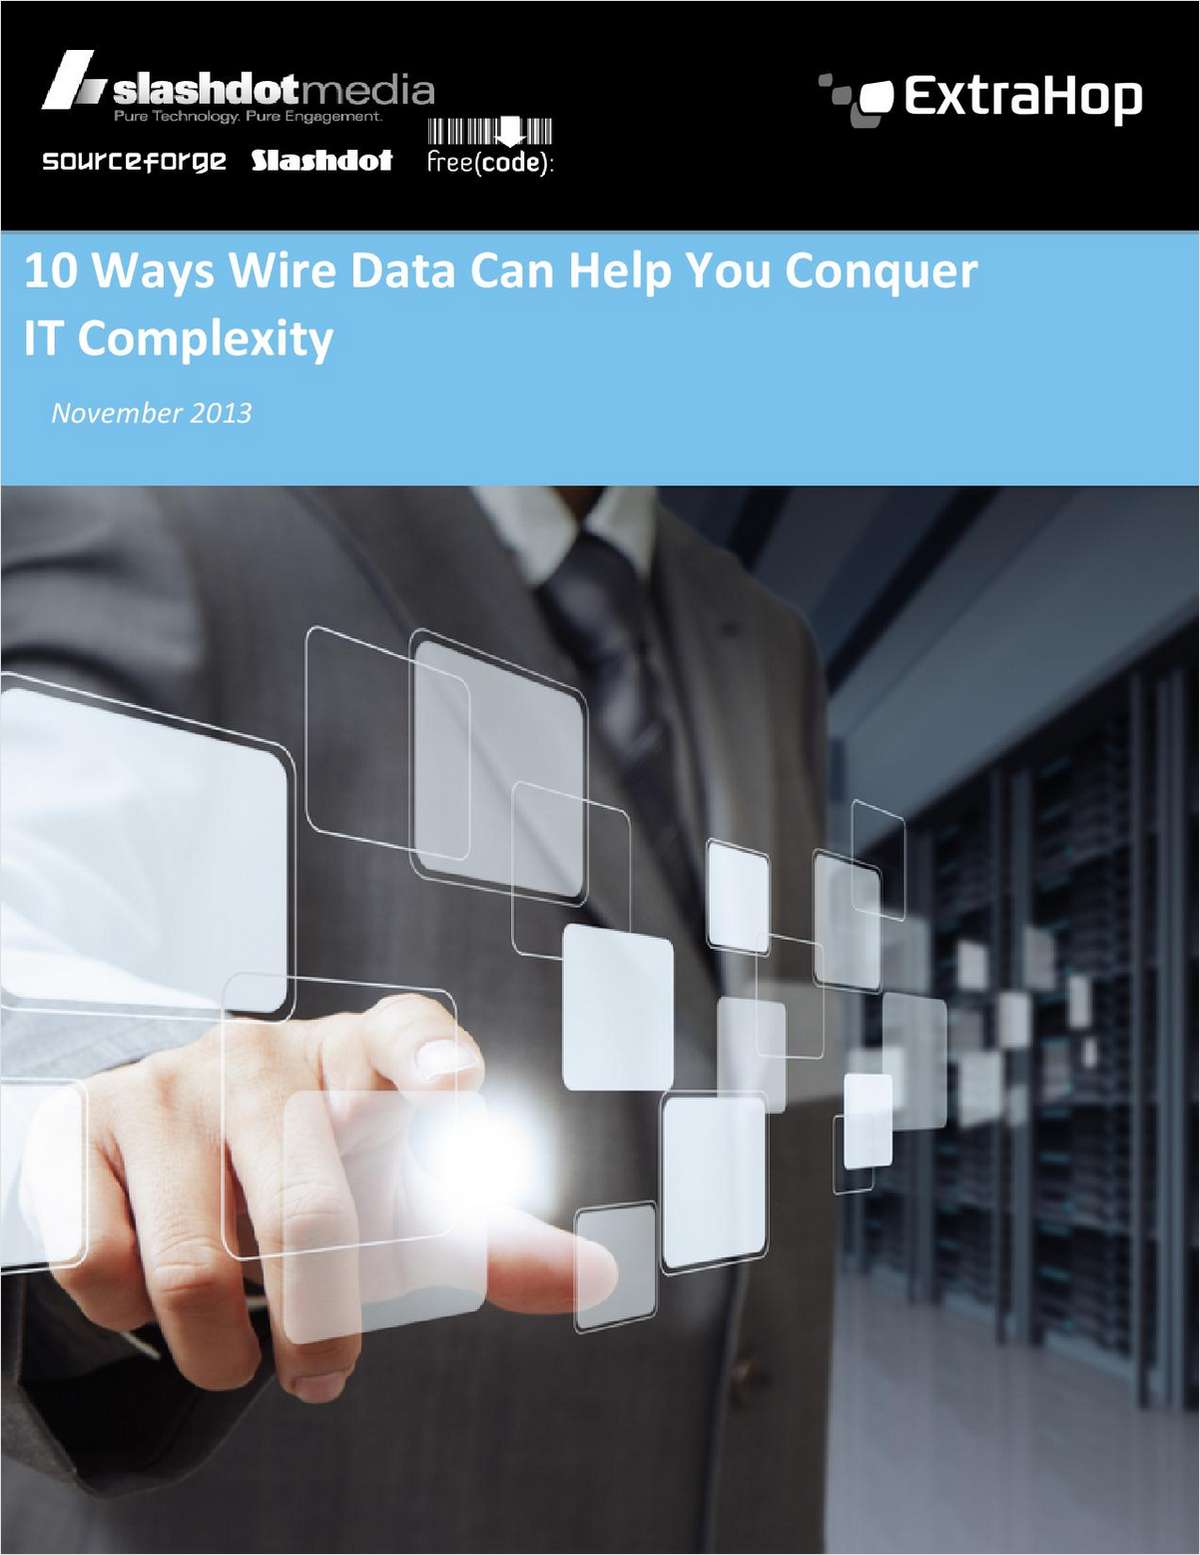 10 Ways Wire Data Helps Conquer IT Complexity